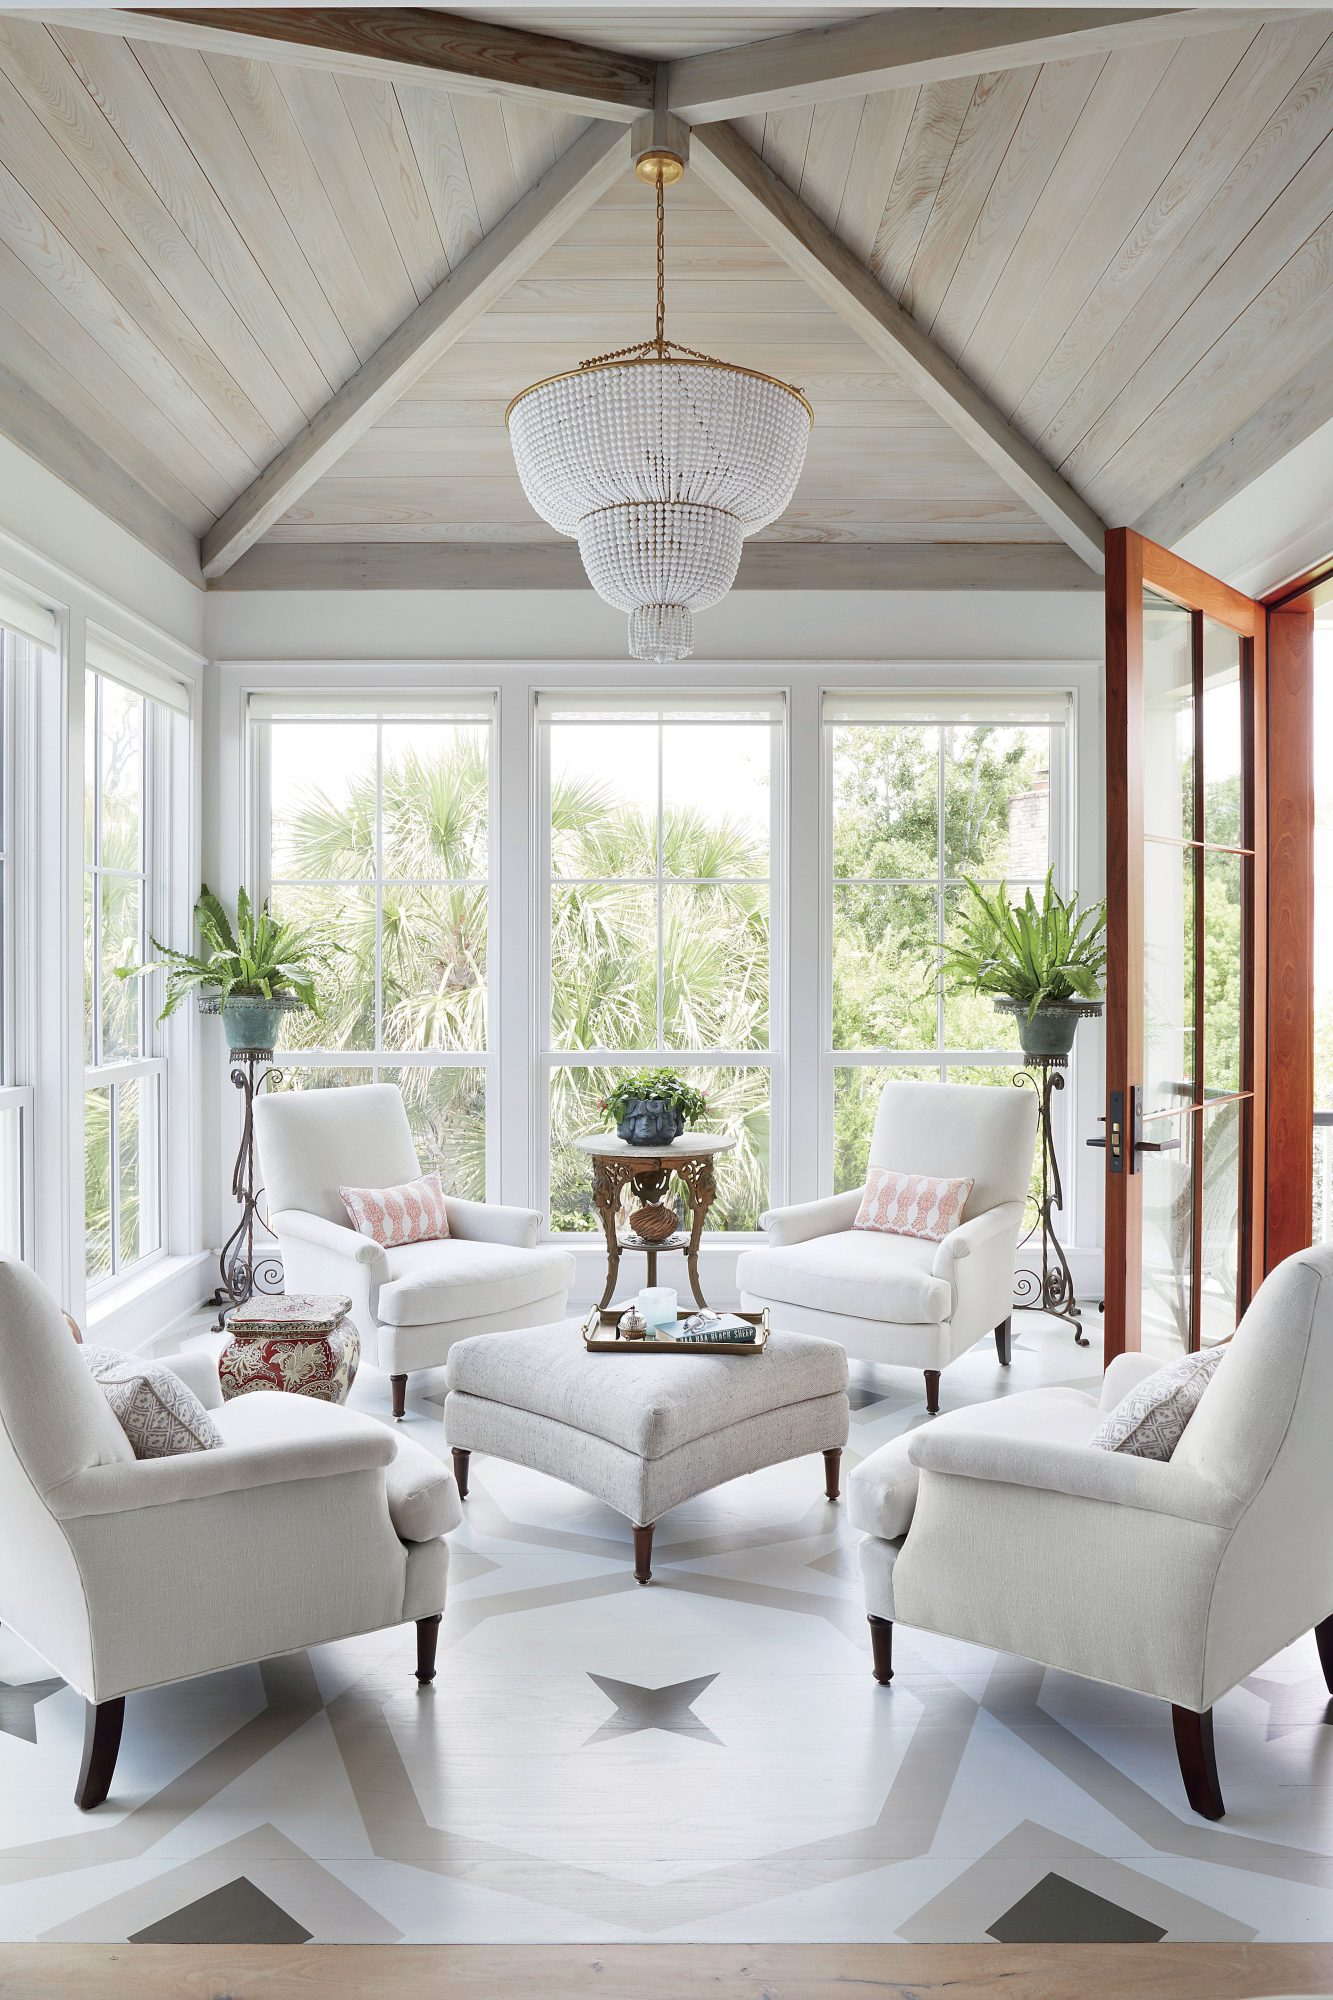 Jenny Keenan Sunroom Designed for Her Parents in Mount Pleasant, SC